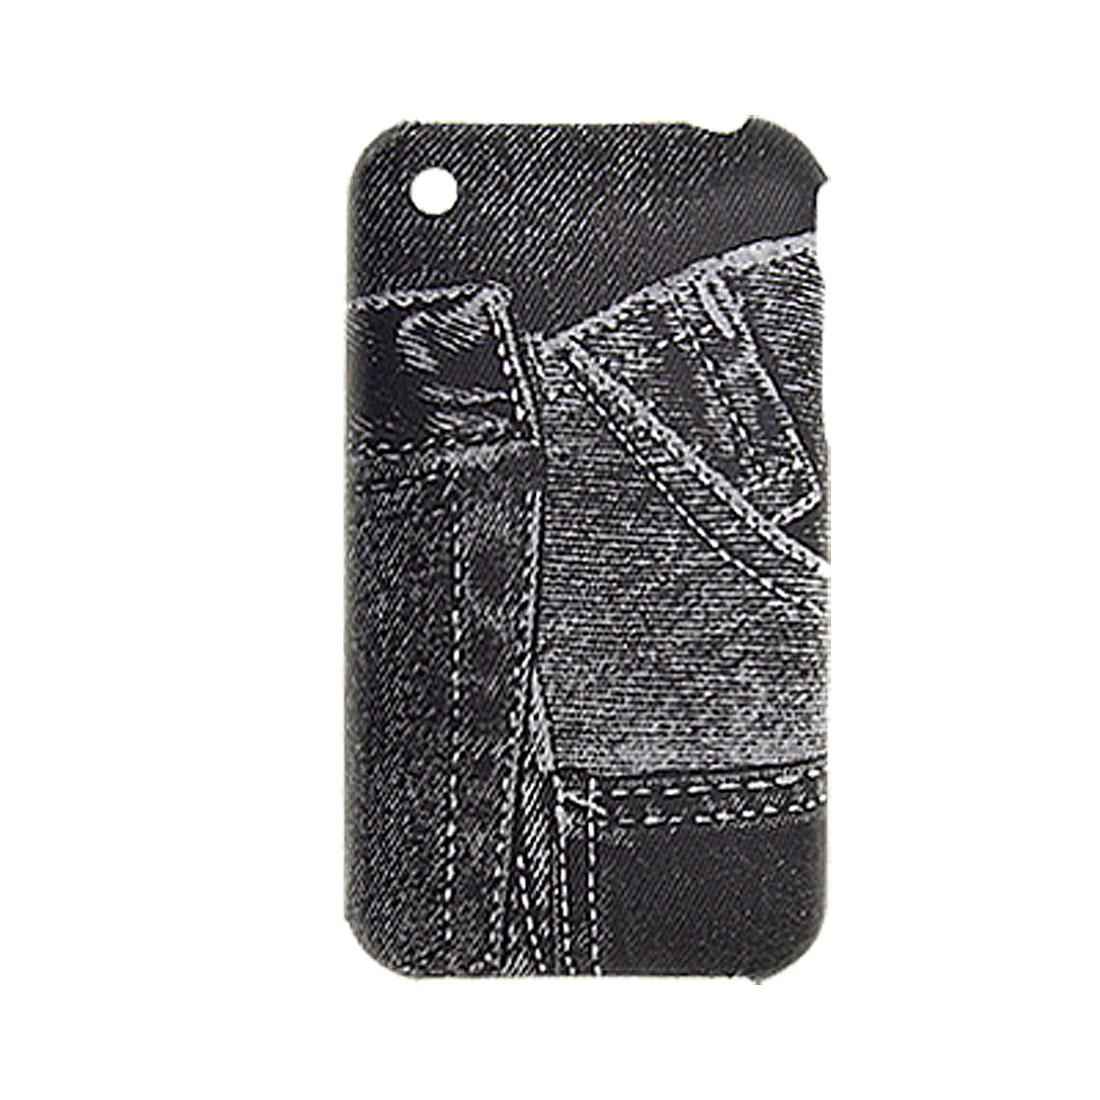 Black Jeans Print Plastic Hard Back Cover Shell for iPhone 3GS